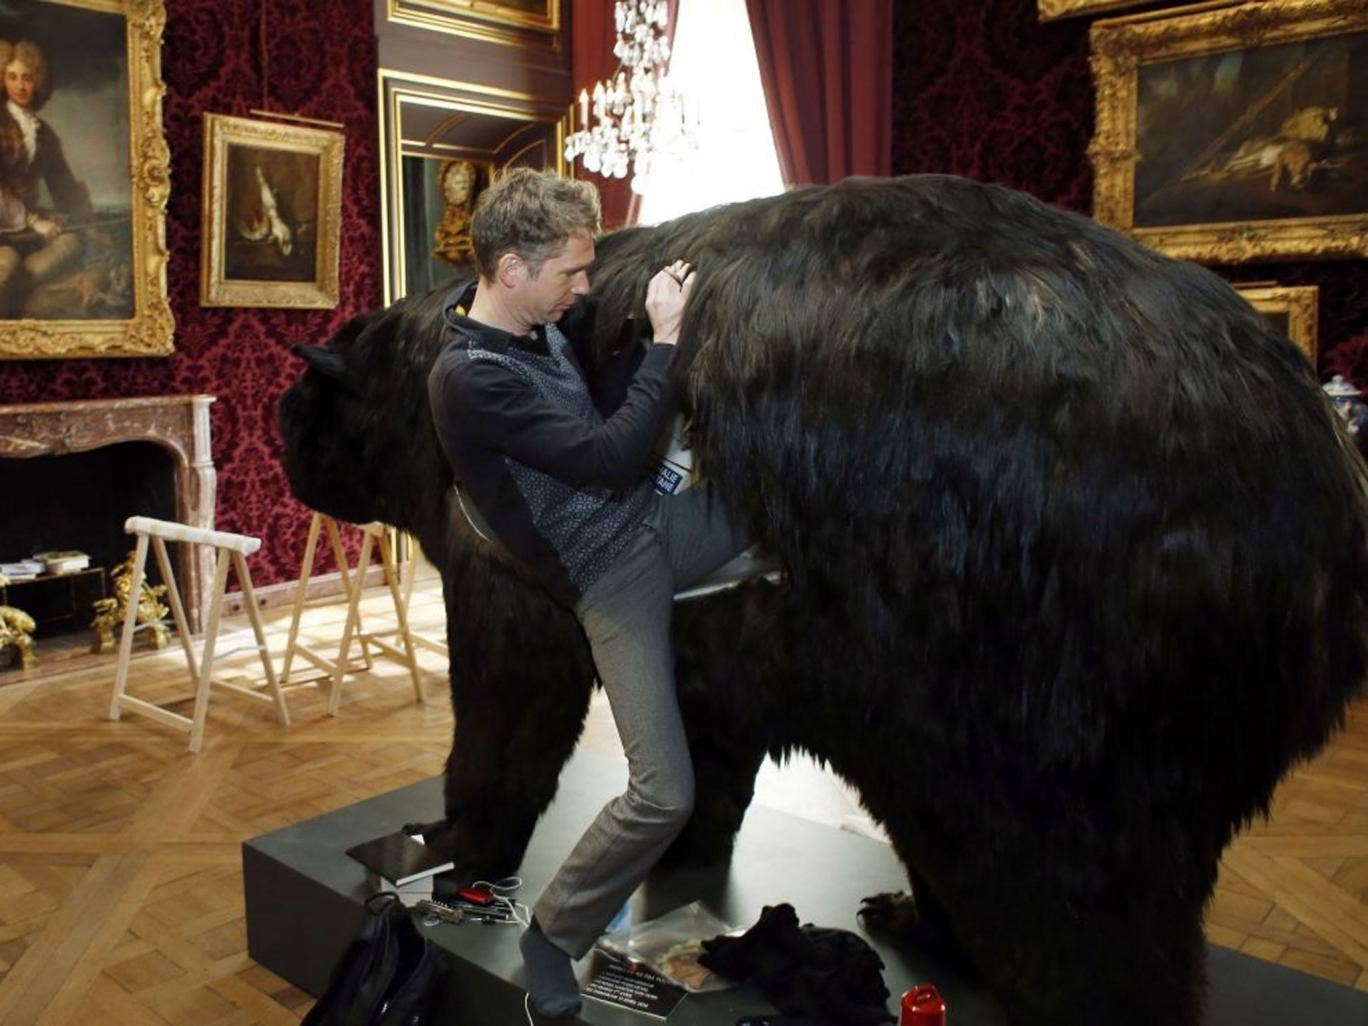 French artist Abraham Poincheval climbs into a fake bear, on March 31, 2014, in Paris, the day before starting an artistic performance in which he will spend thirteen days in the bear's skin, at the Hunting and Wildlife Museum ('Musee de la Chasse et de l